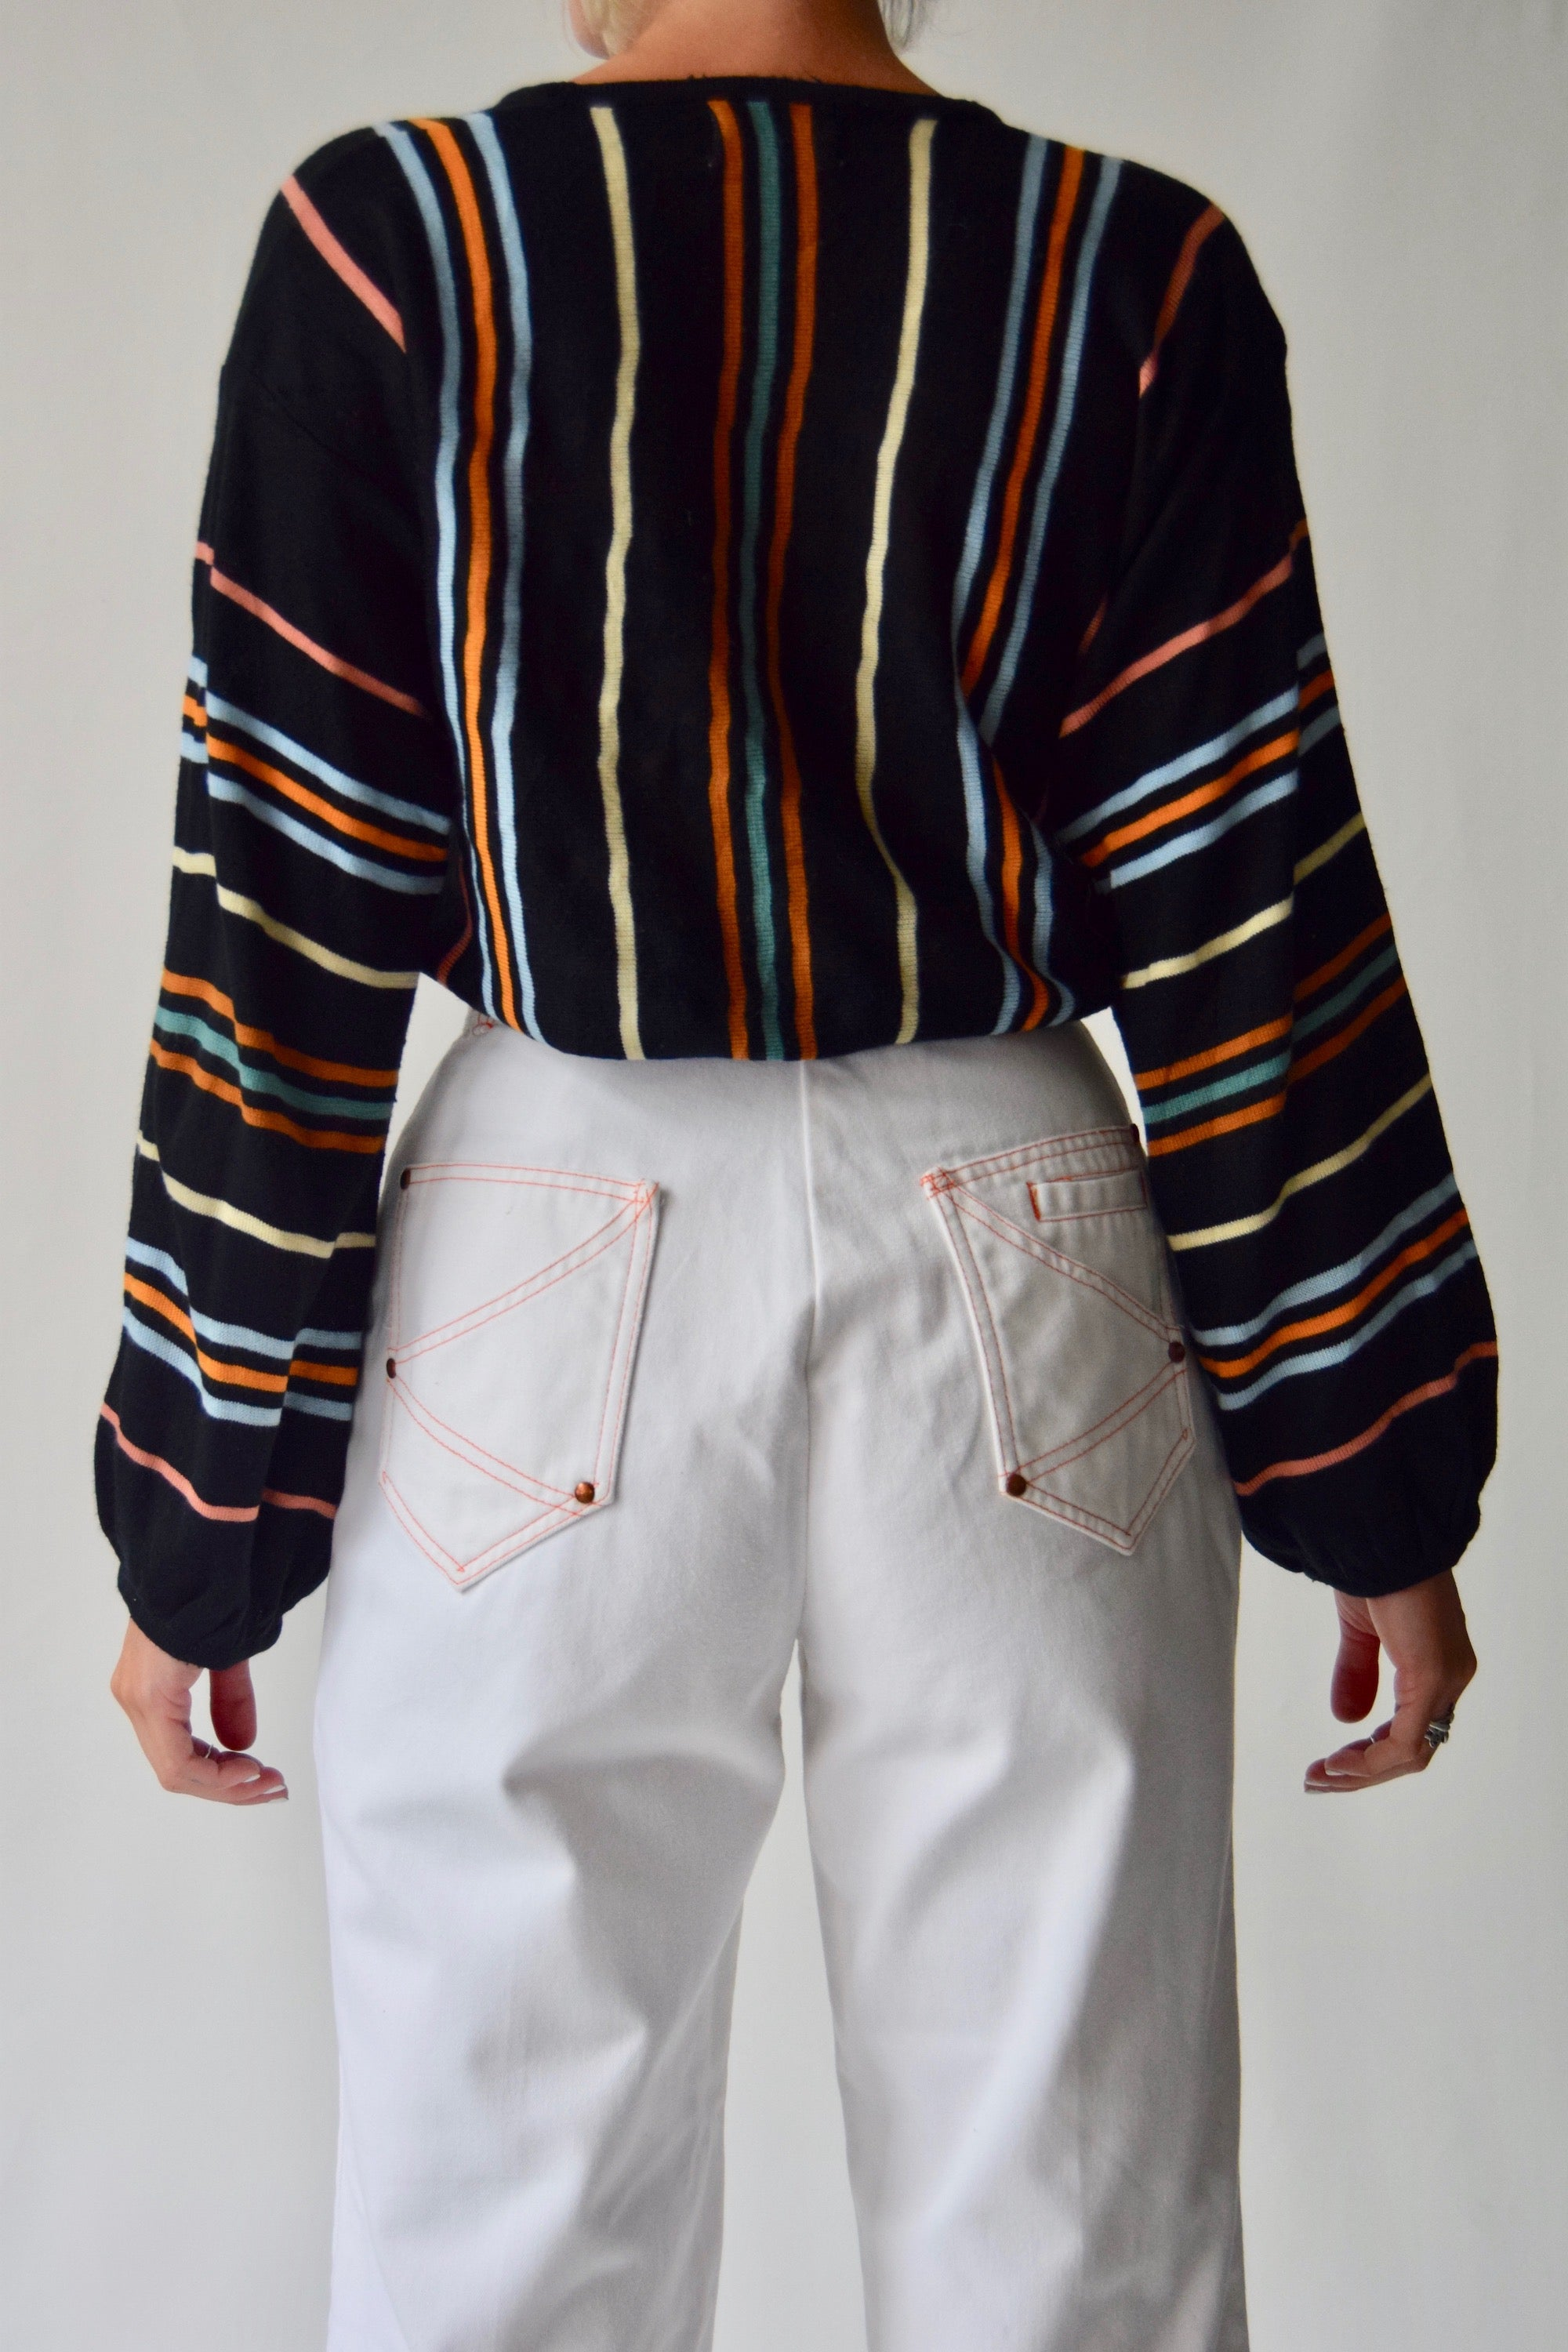 Vintage White & Orange Seamed Bell Bottoms